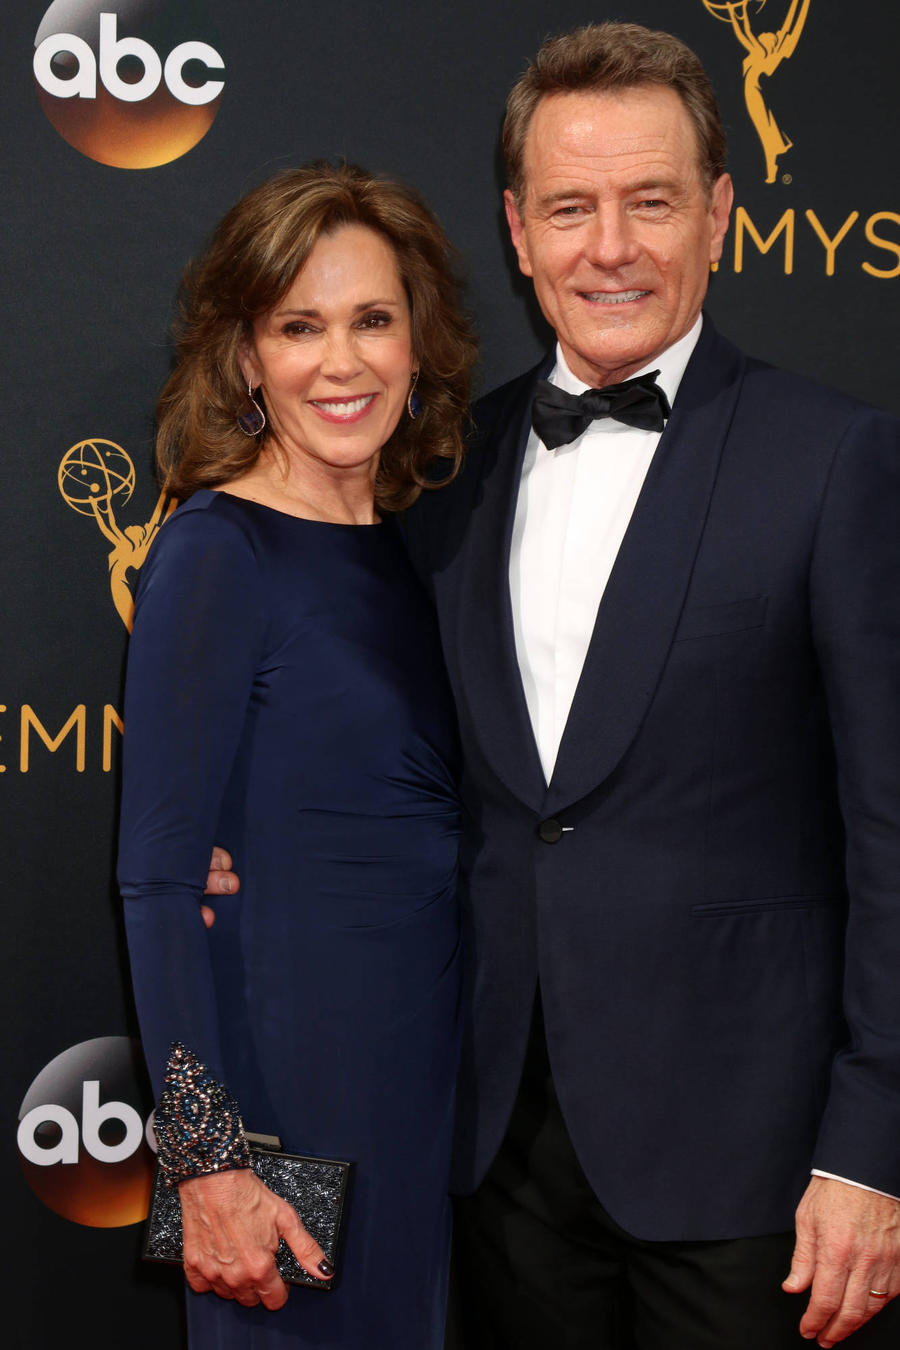 Bryan Cranston Proposed To His Wife In The Bathtub